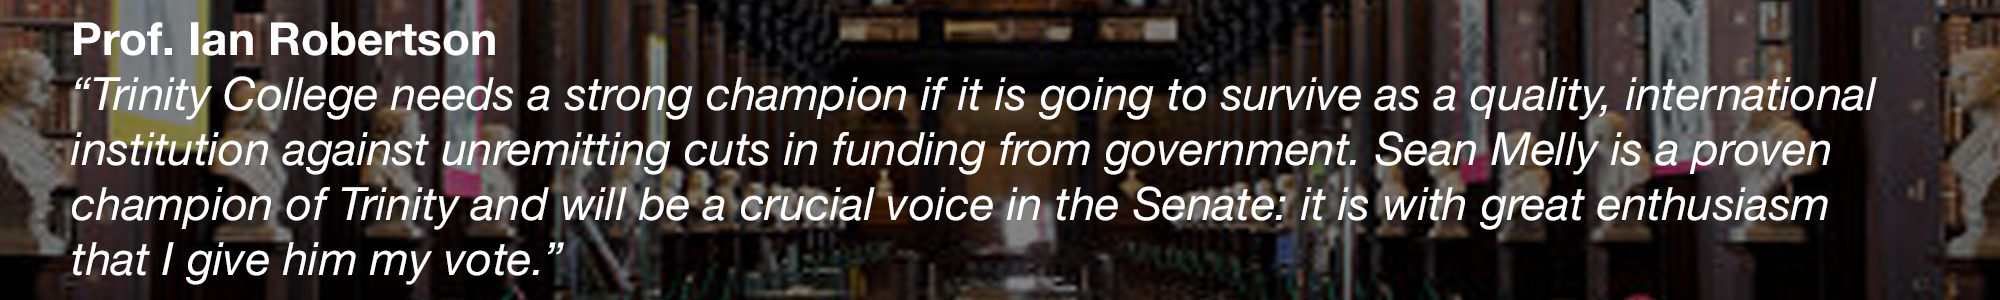 SM_Quote3.2.png